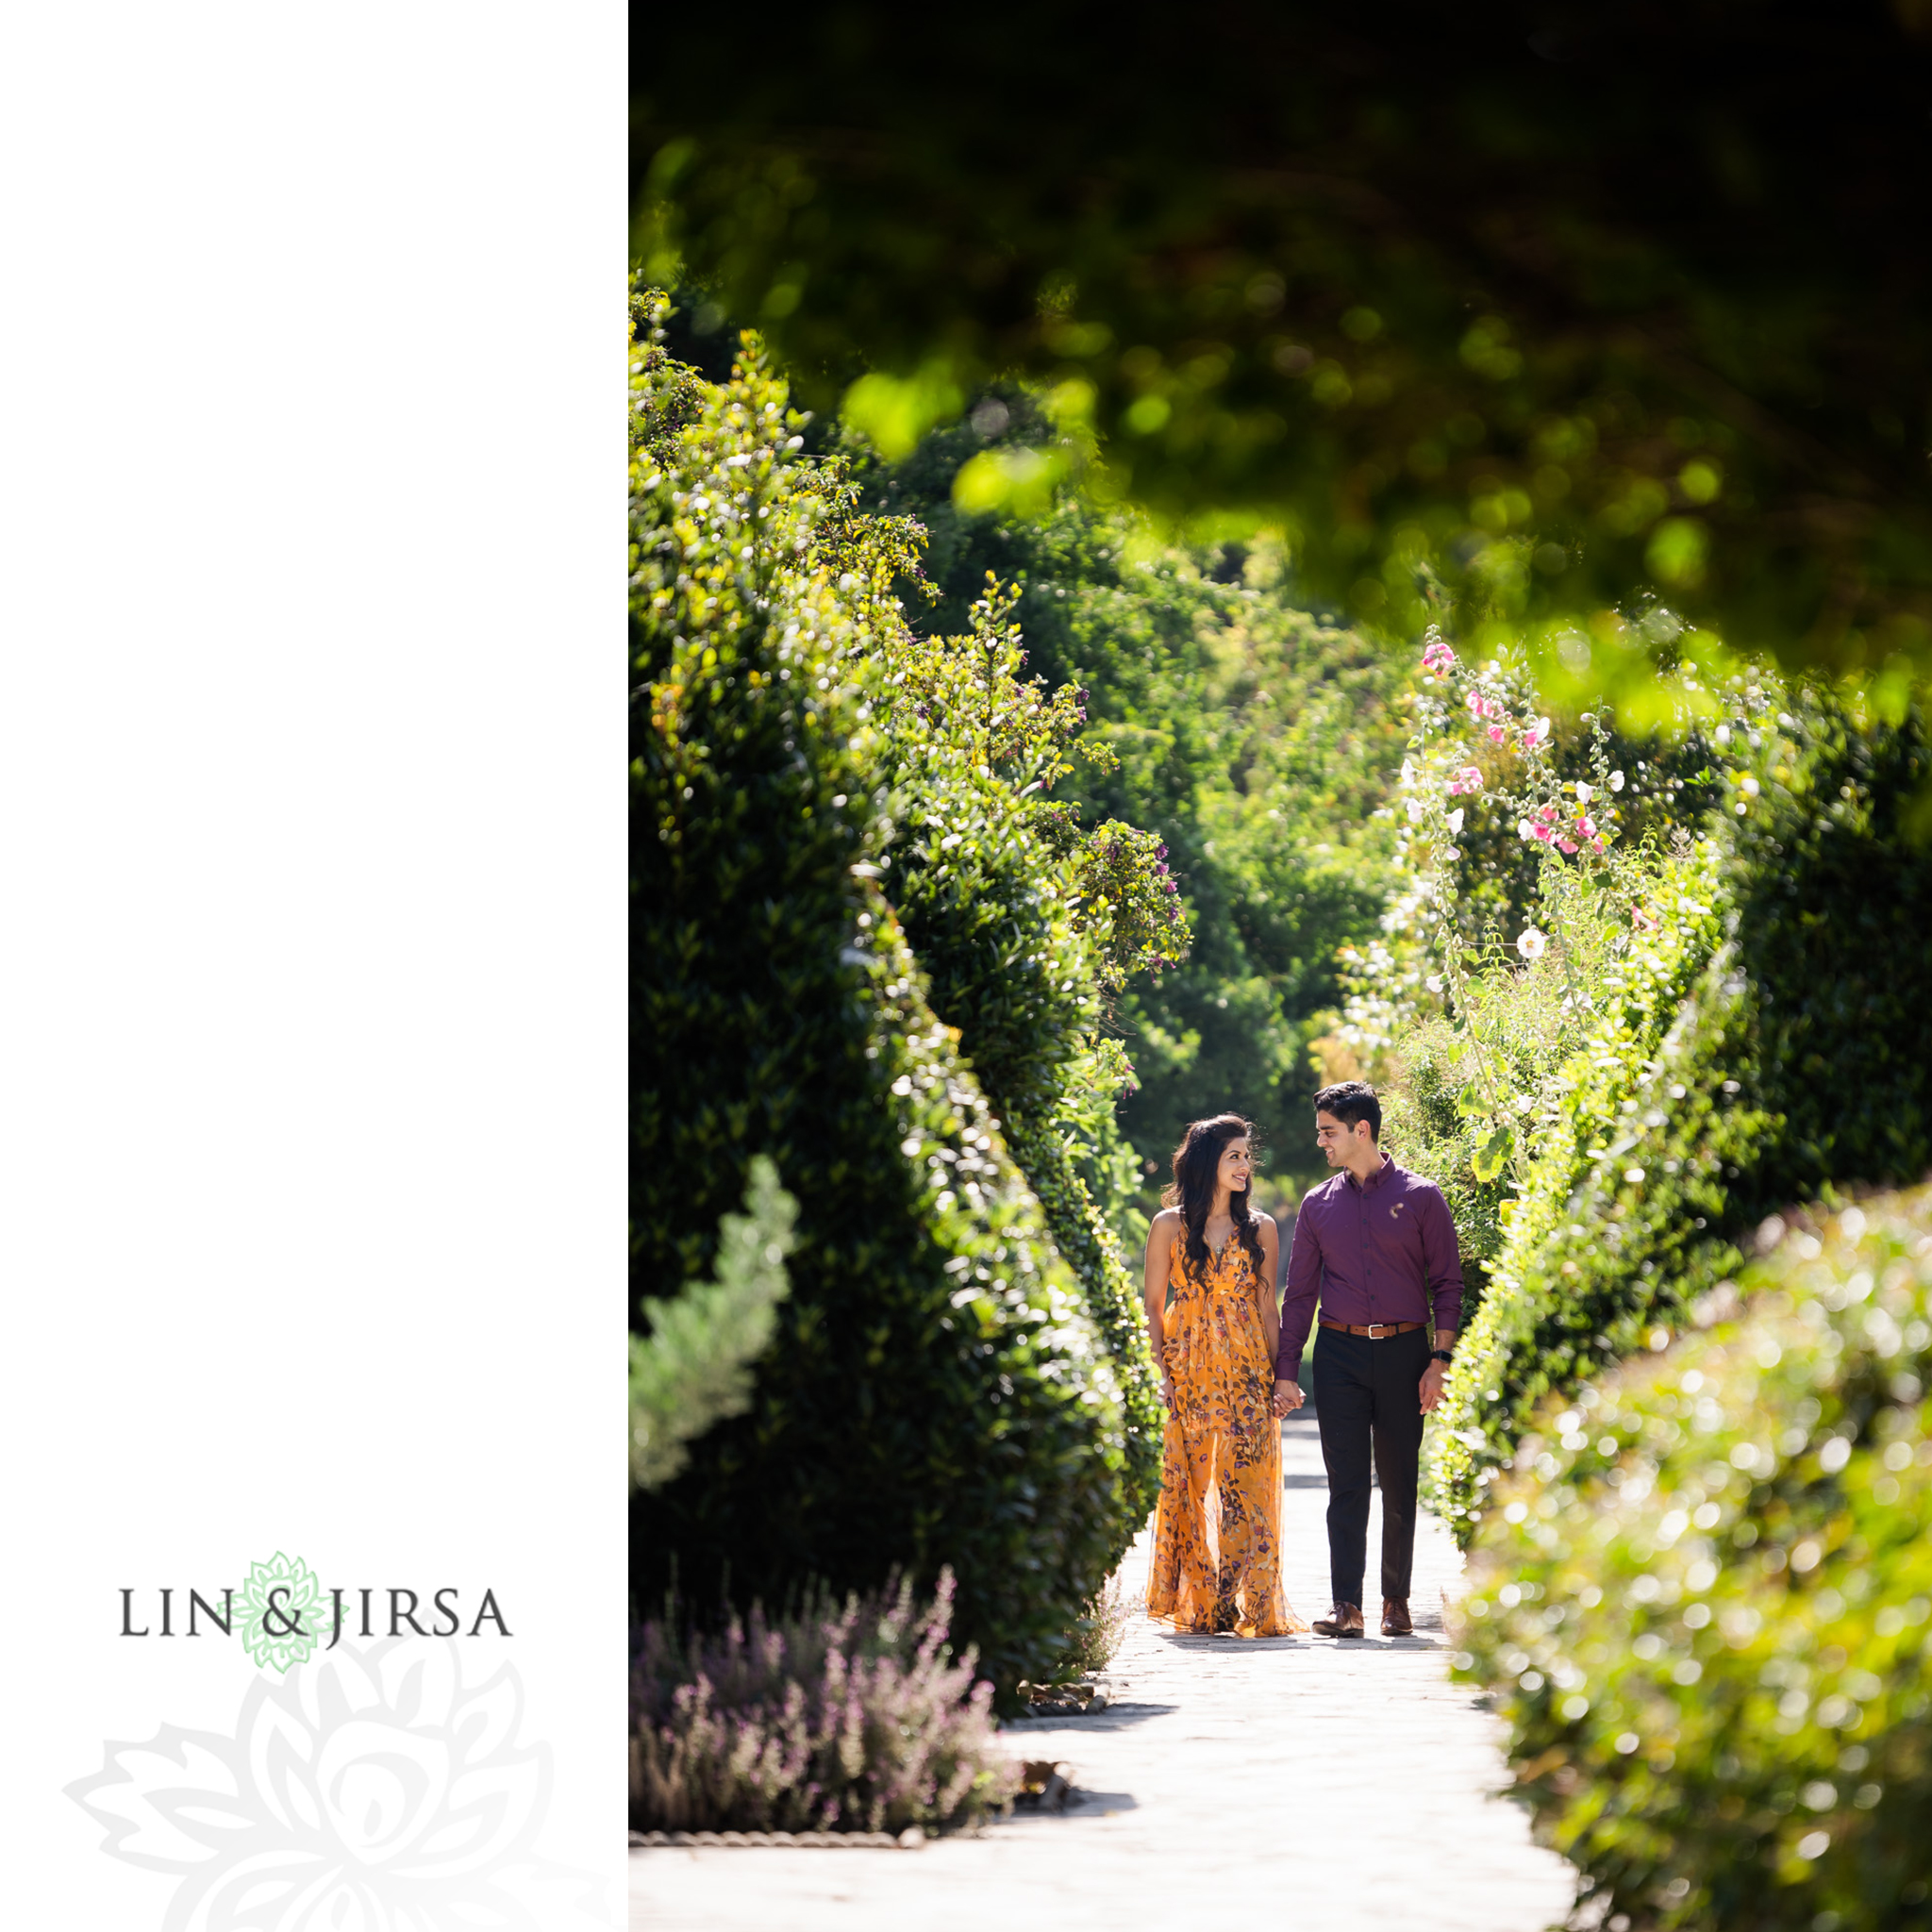 zjg Los Angeles Arboretum Arcadia Engagement Photography